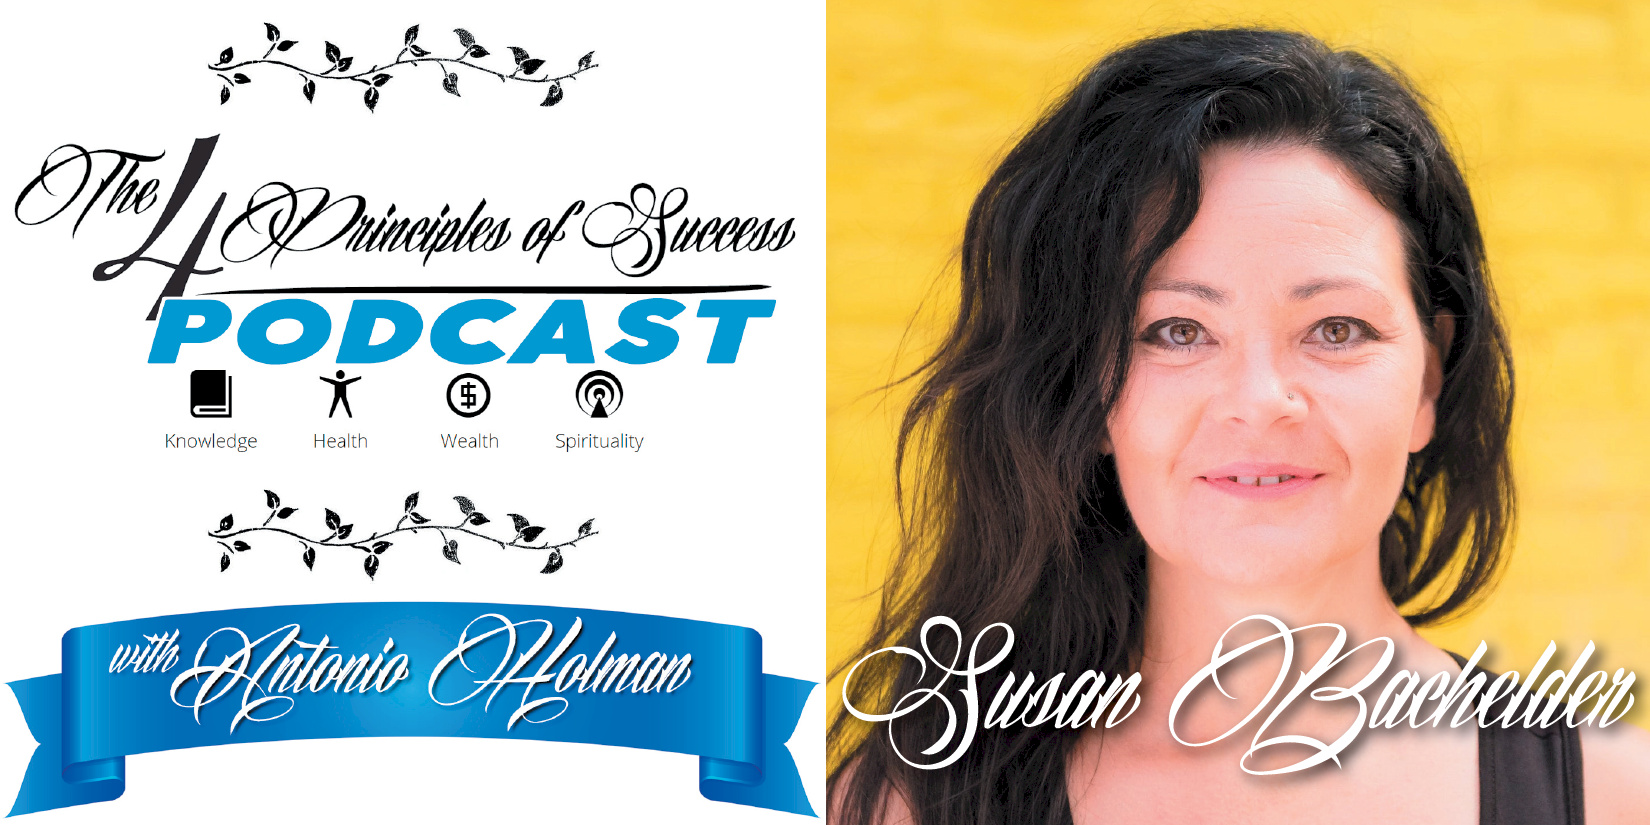 The 4 Principles of Success guest Susan Bachelder